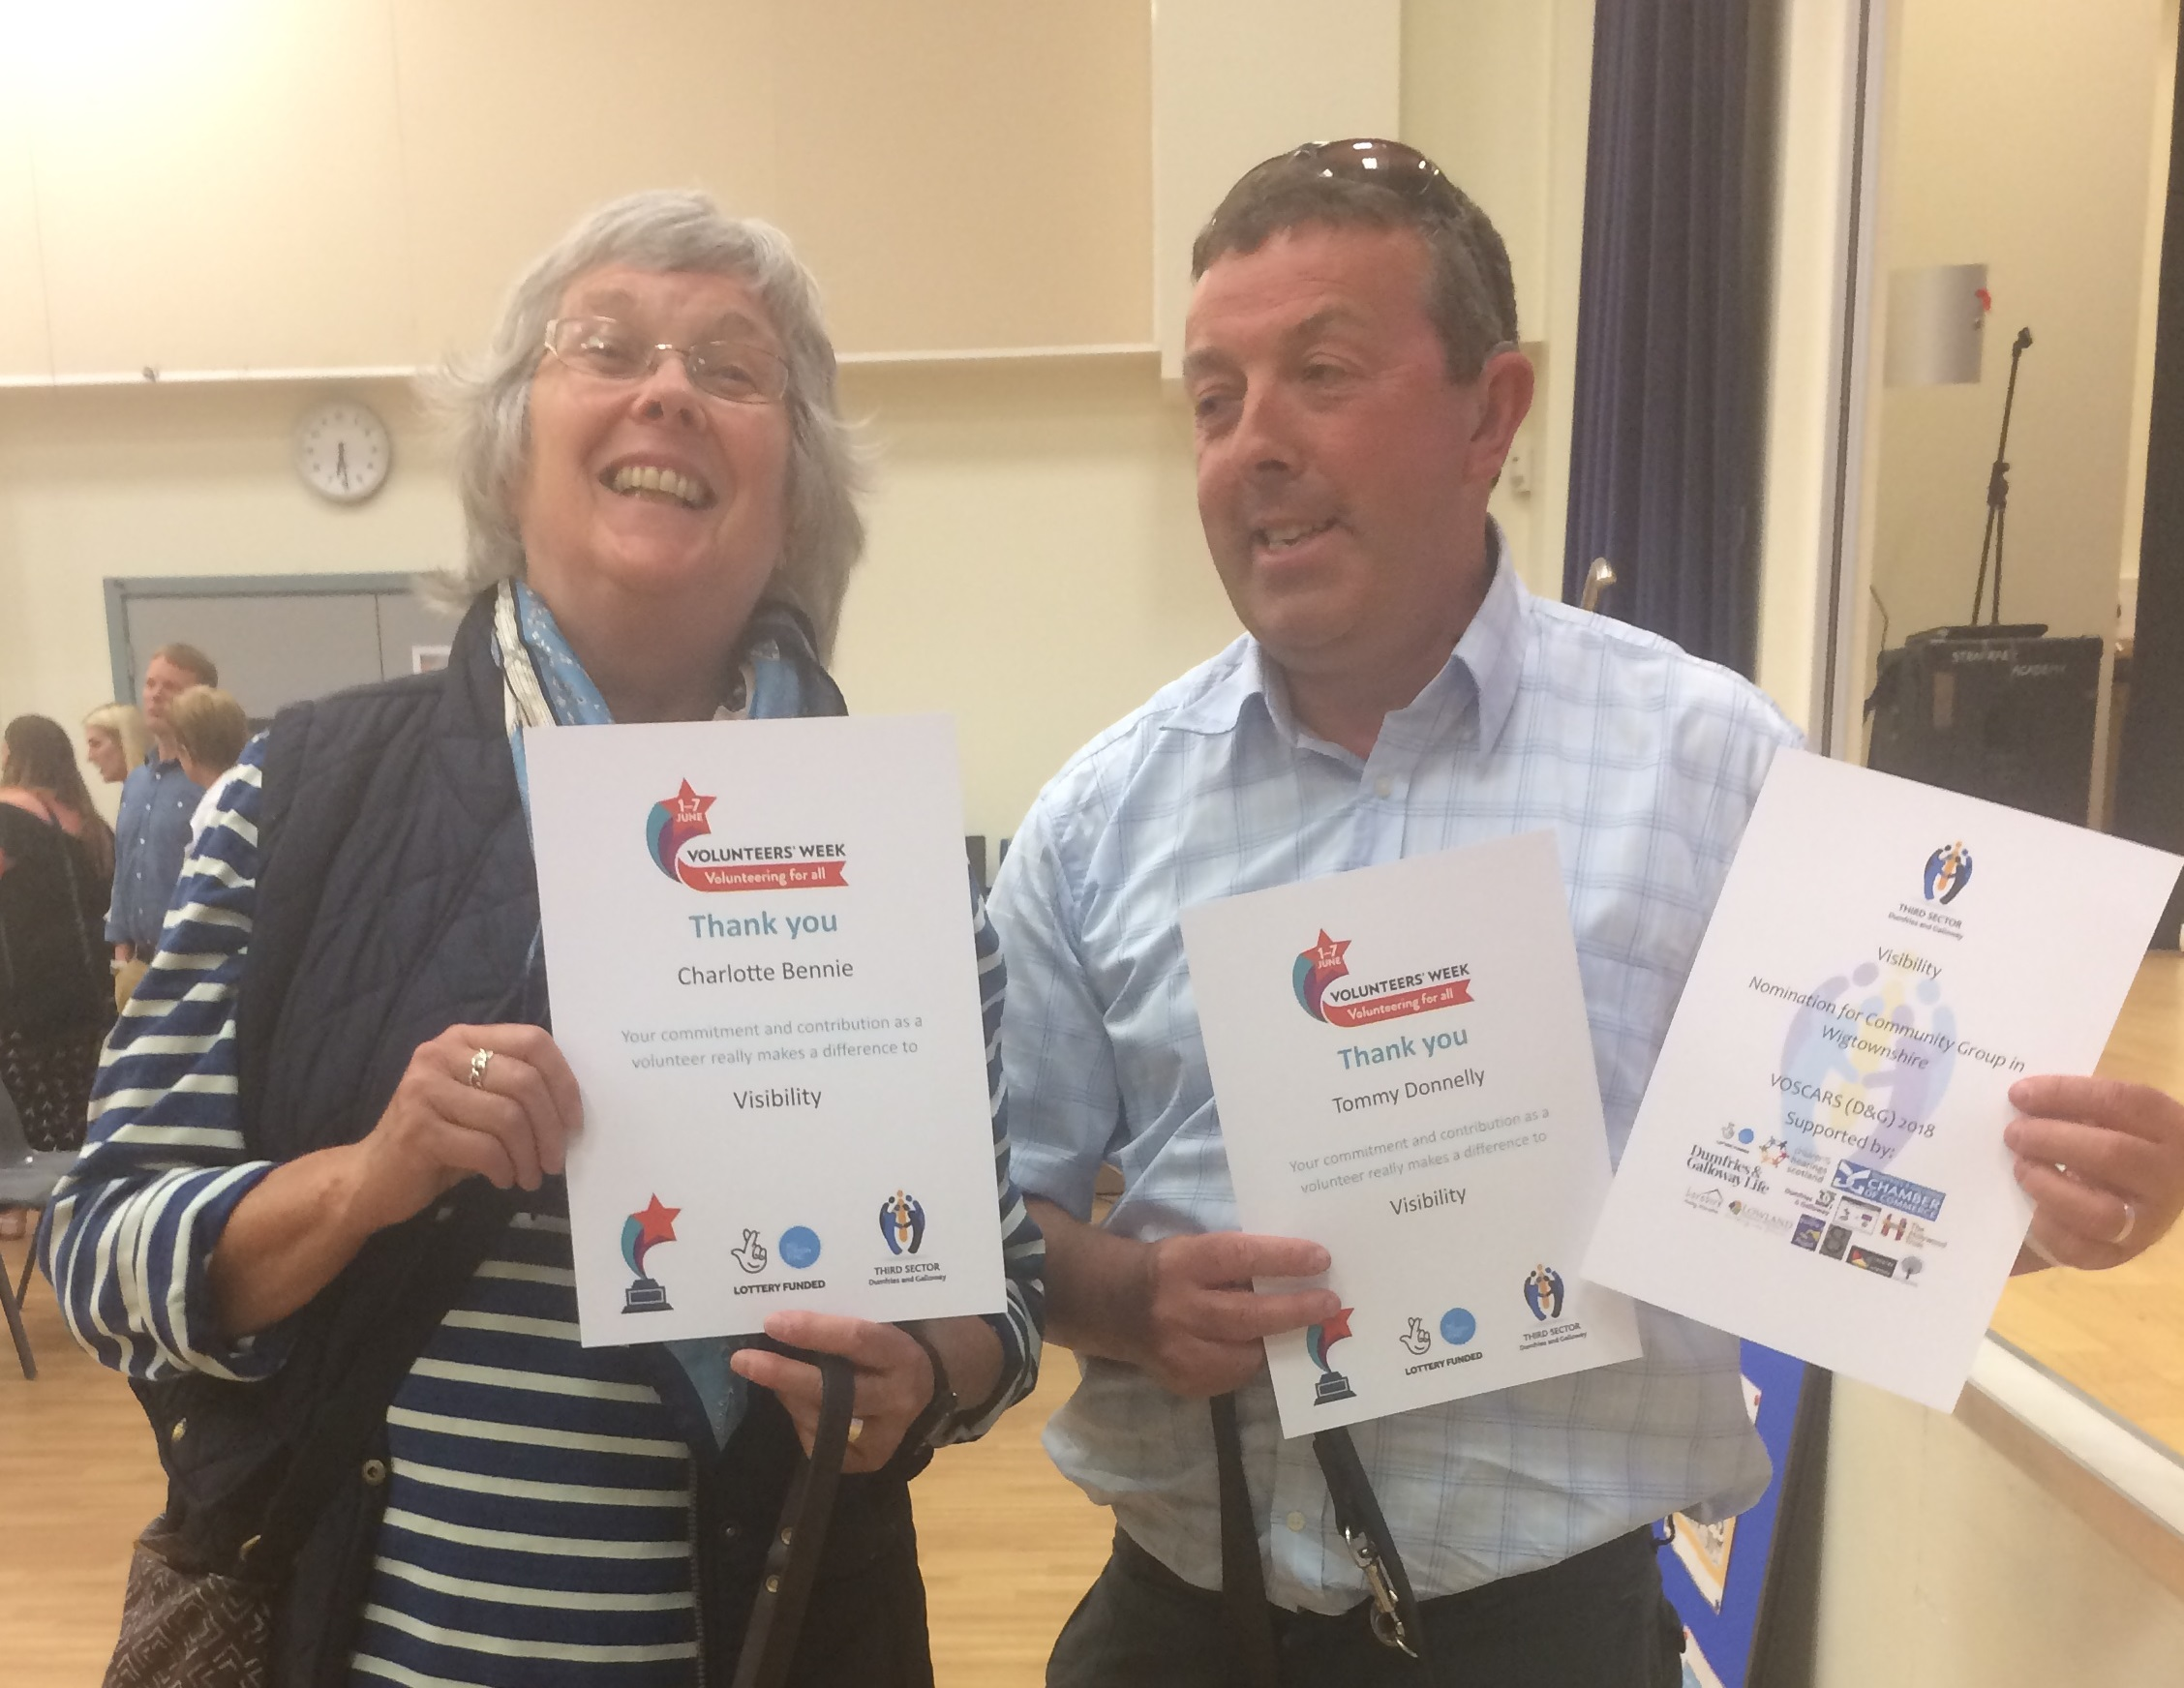 image shows Charlotte and Tommy holding their volunteer certificates and smiling